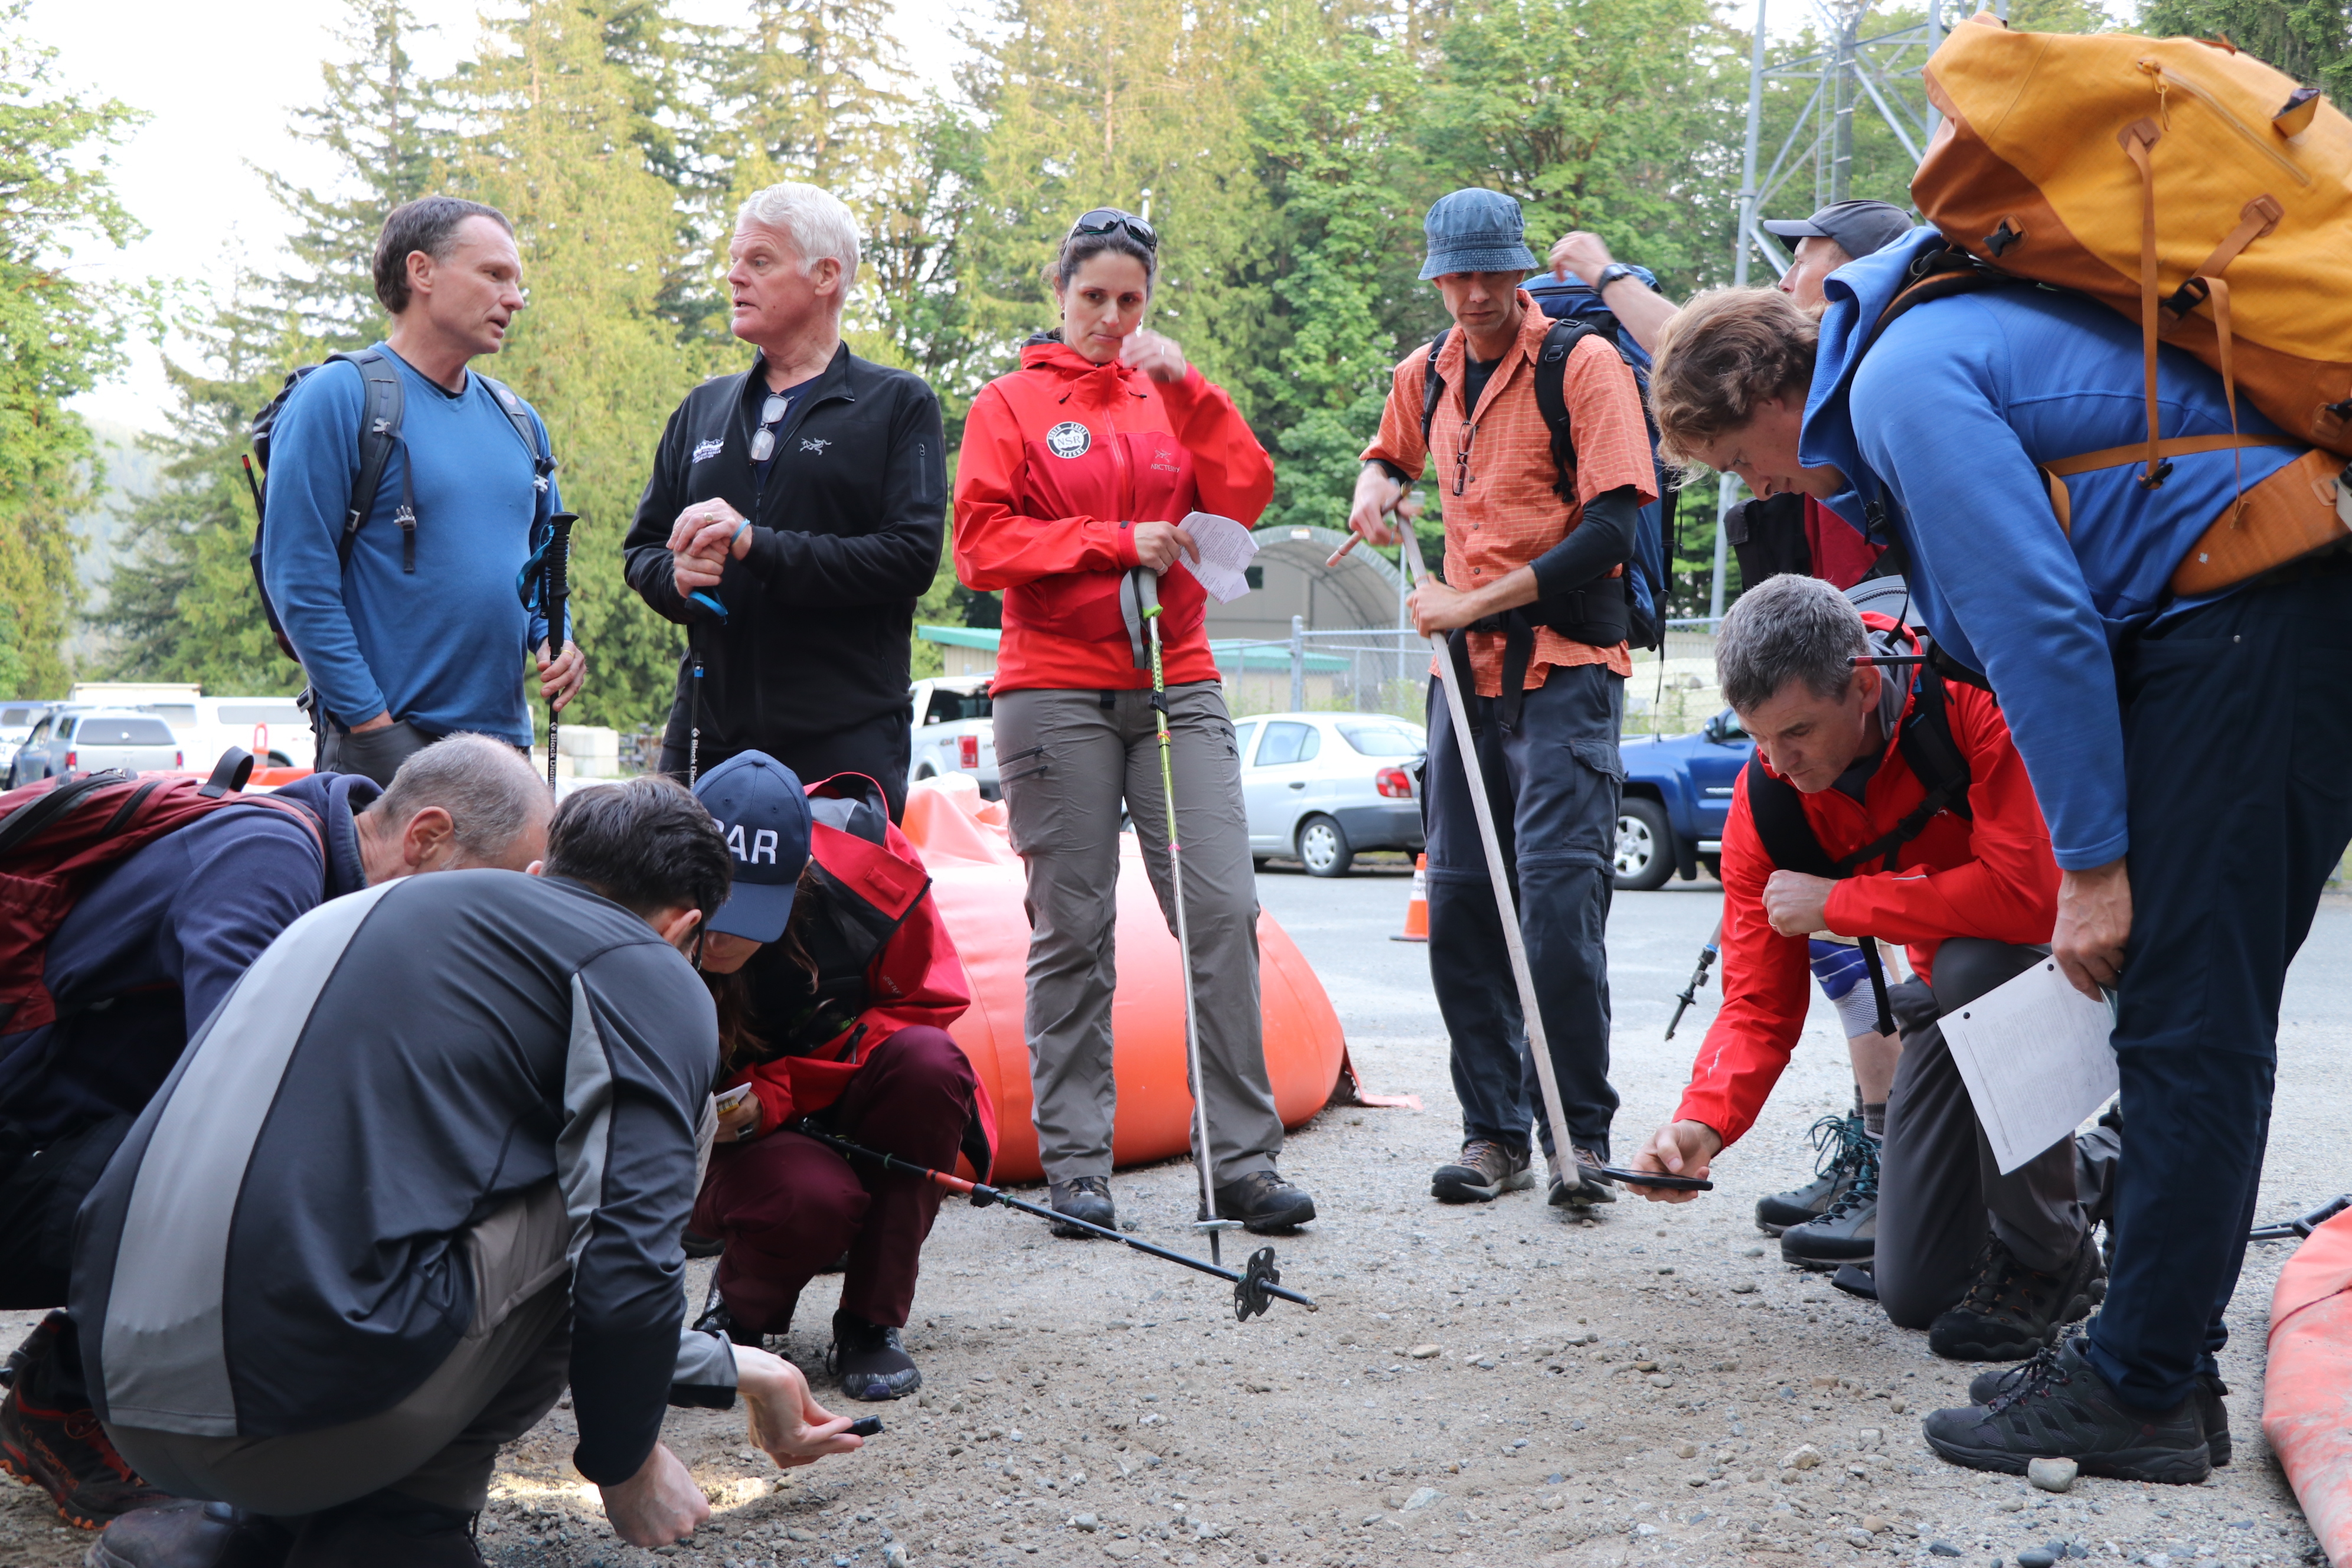 The group of North Shore Rescue volunteers gathered for a weekly 'Tuesday Training' session near the Lower Seymour Conservation Reserve in North Vancouver, in an area closed to the public. (Clare Hennig/CBC)